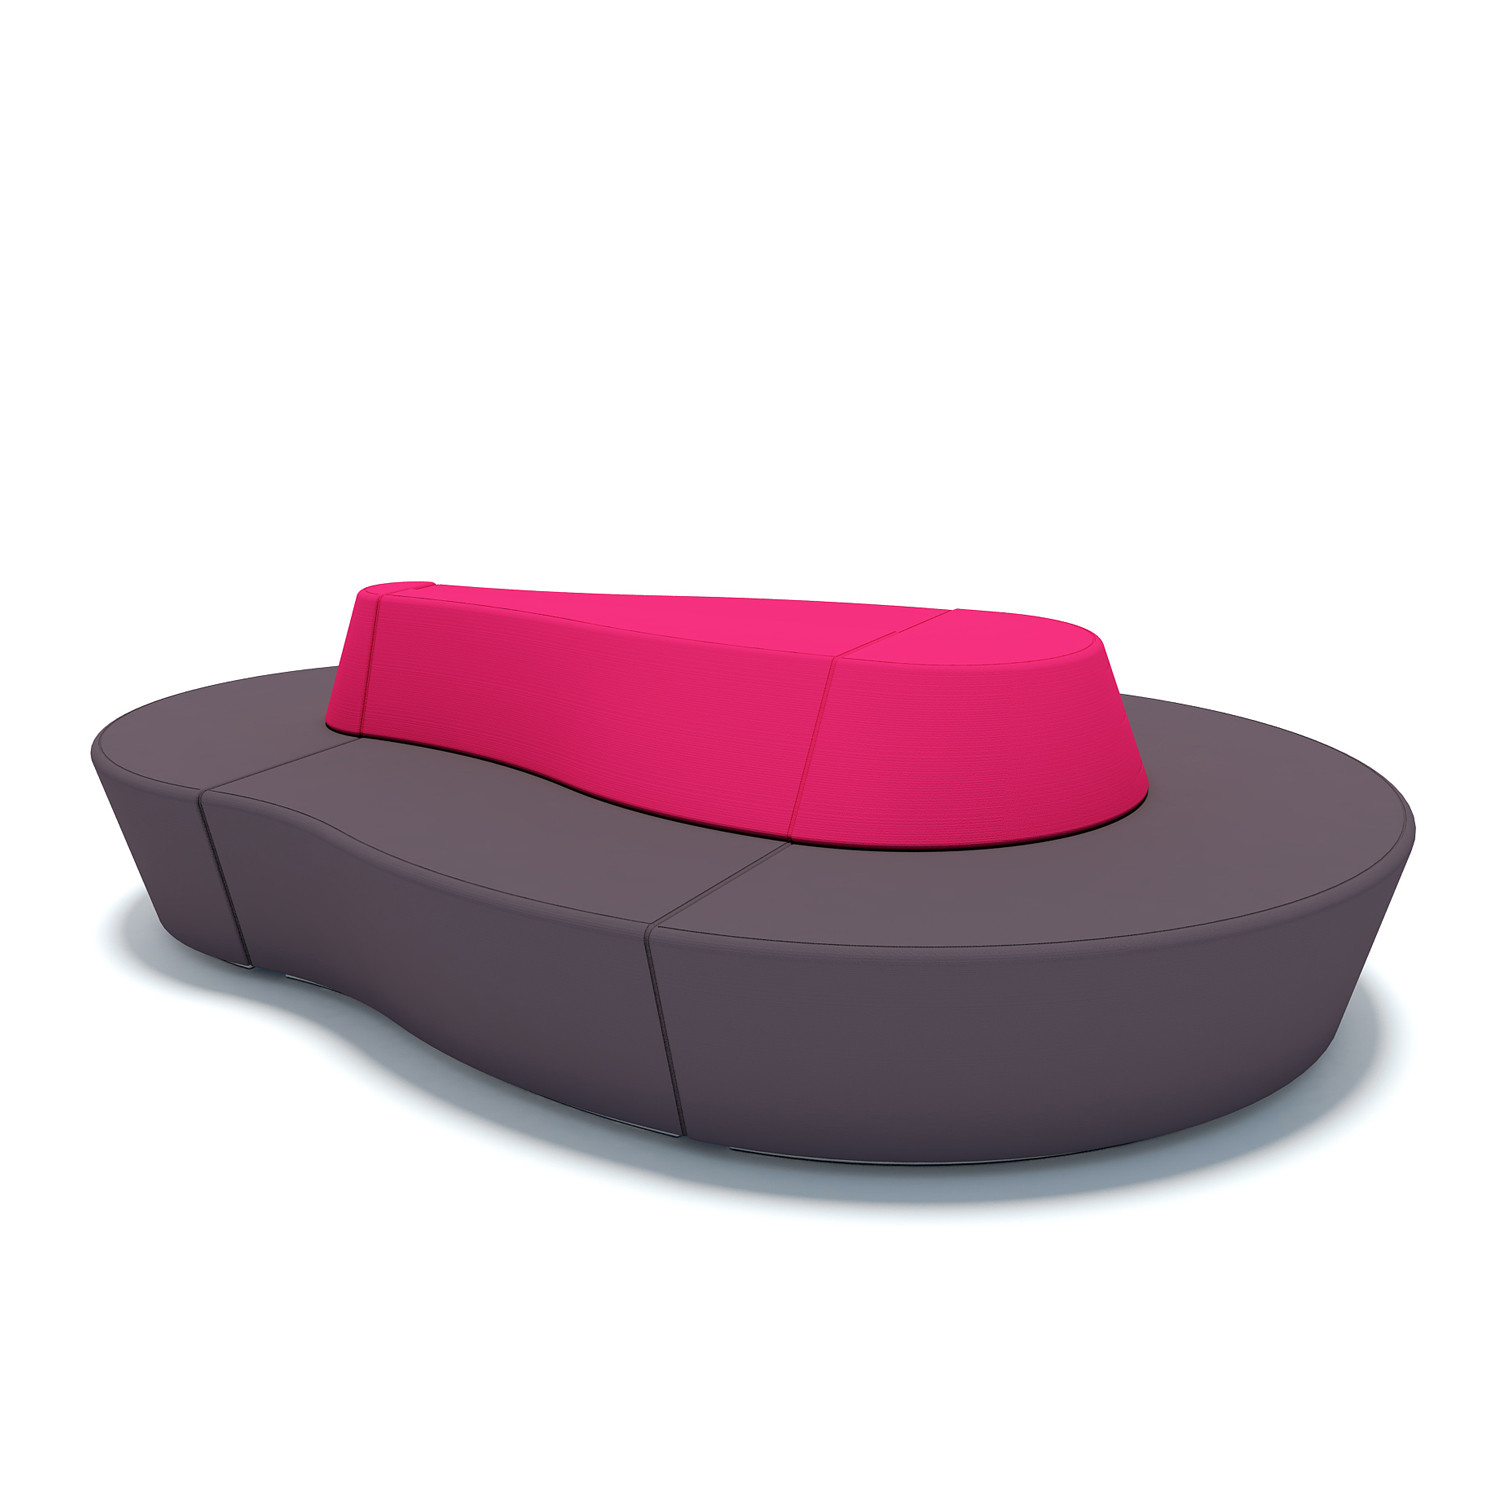 Horizon Island Sofa